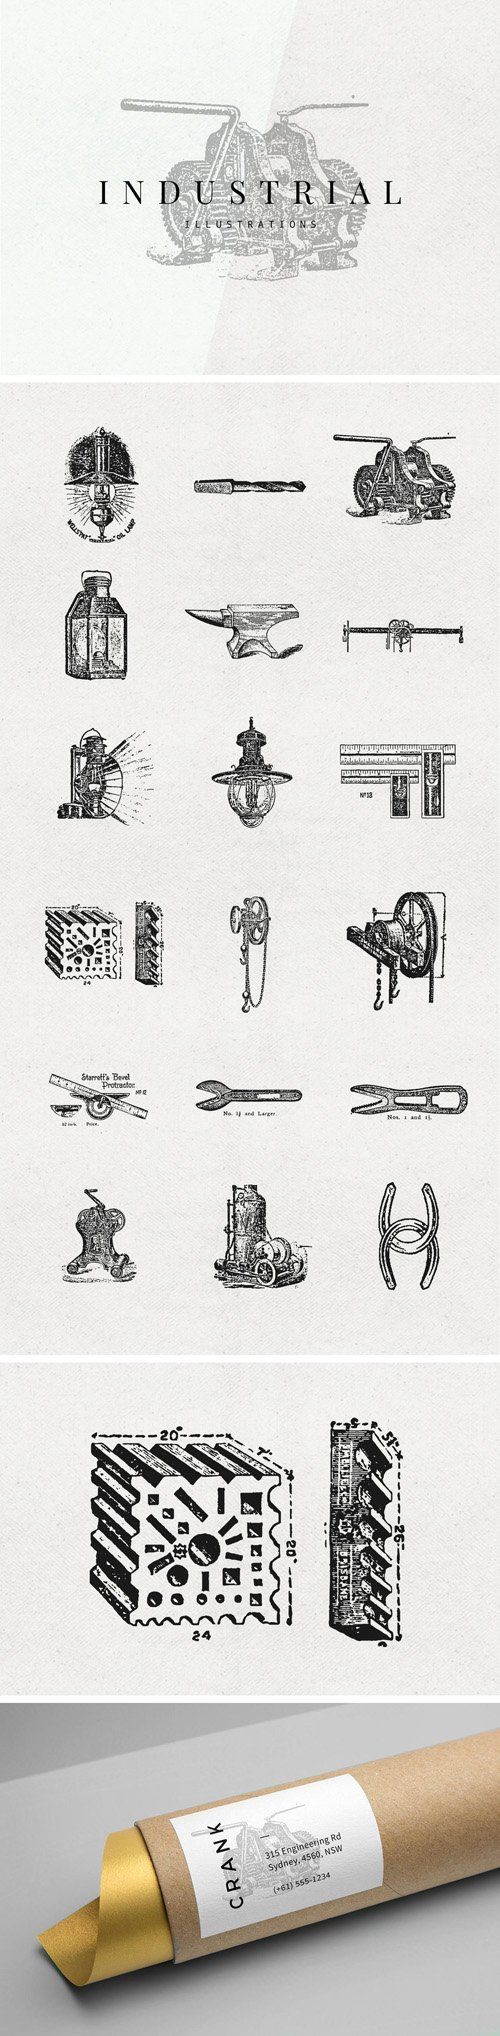 18 Industrial Vector Illustrations Set [Ai/EPS/PNG]